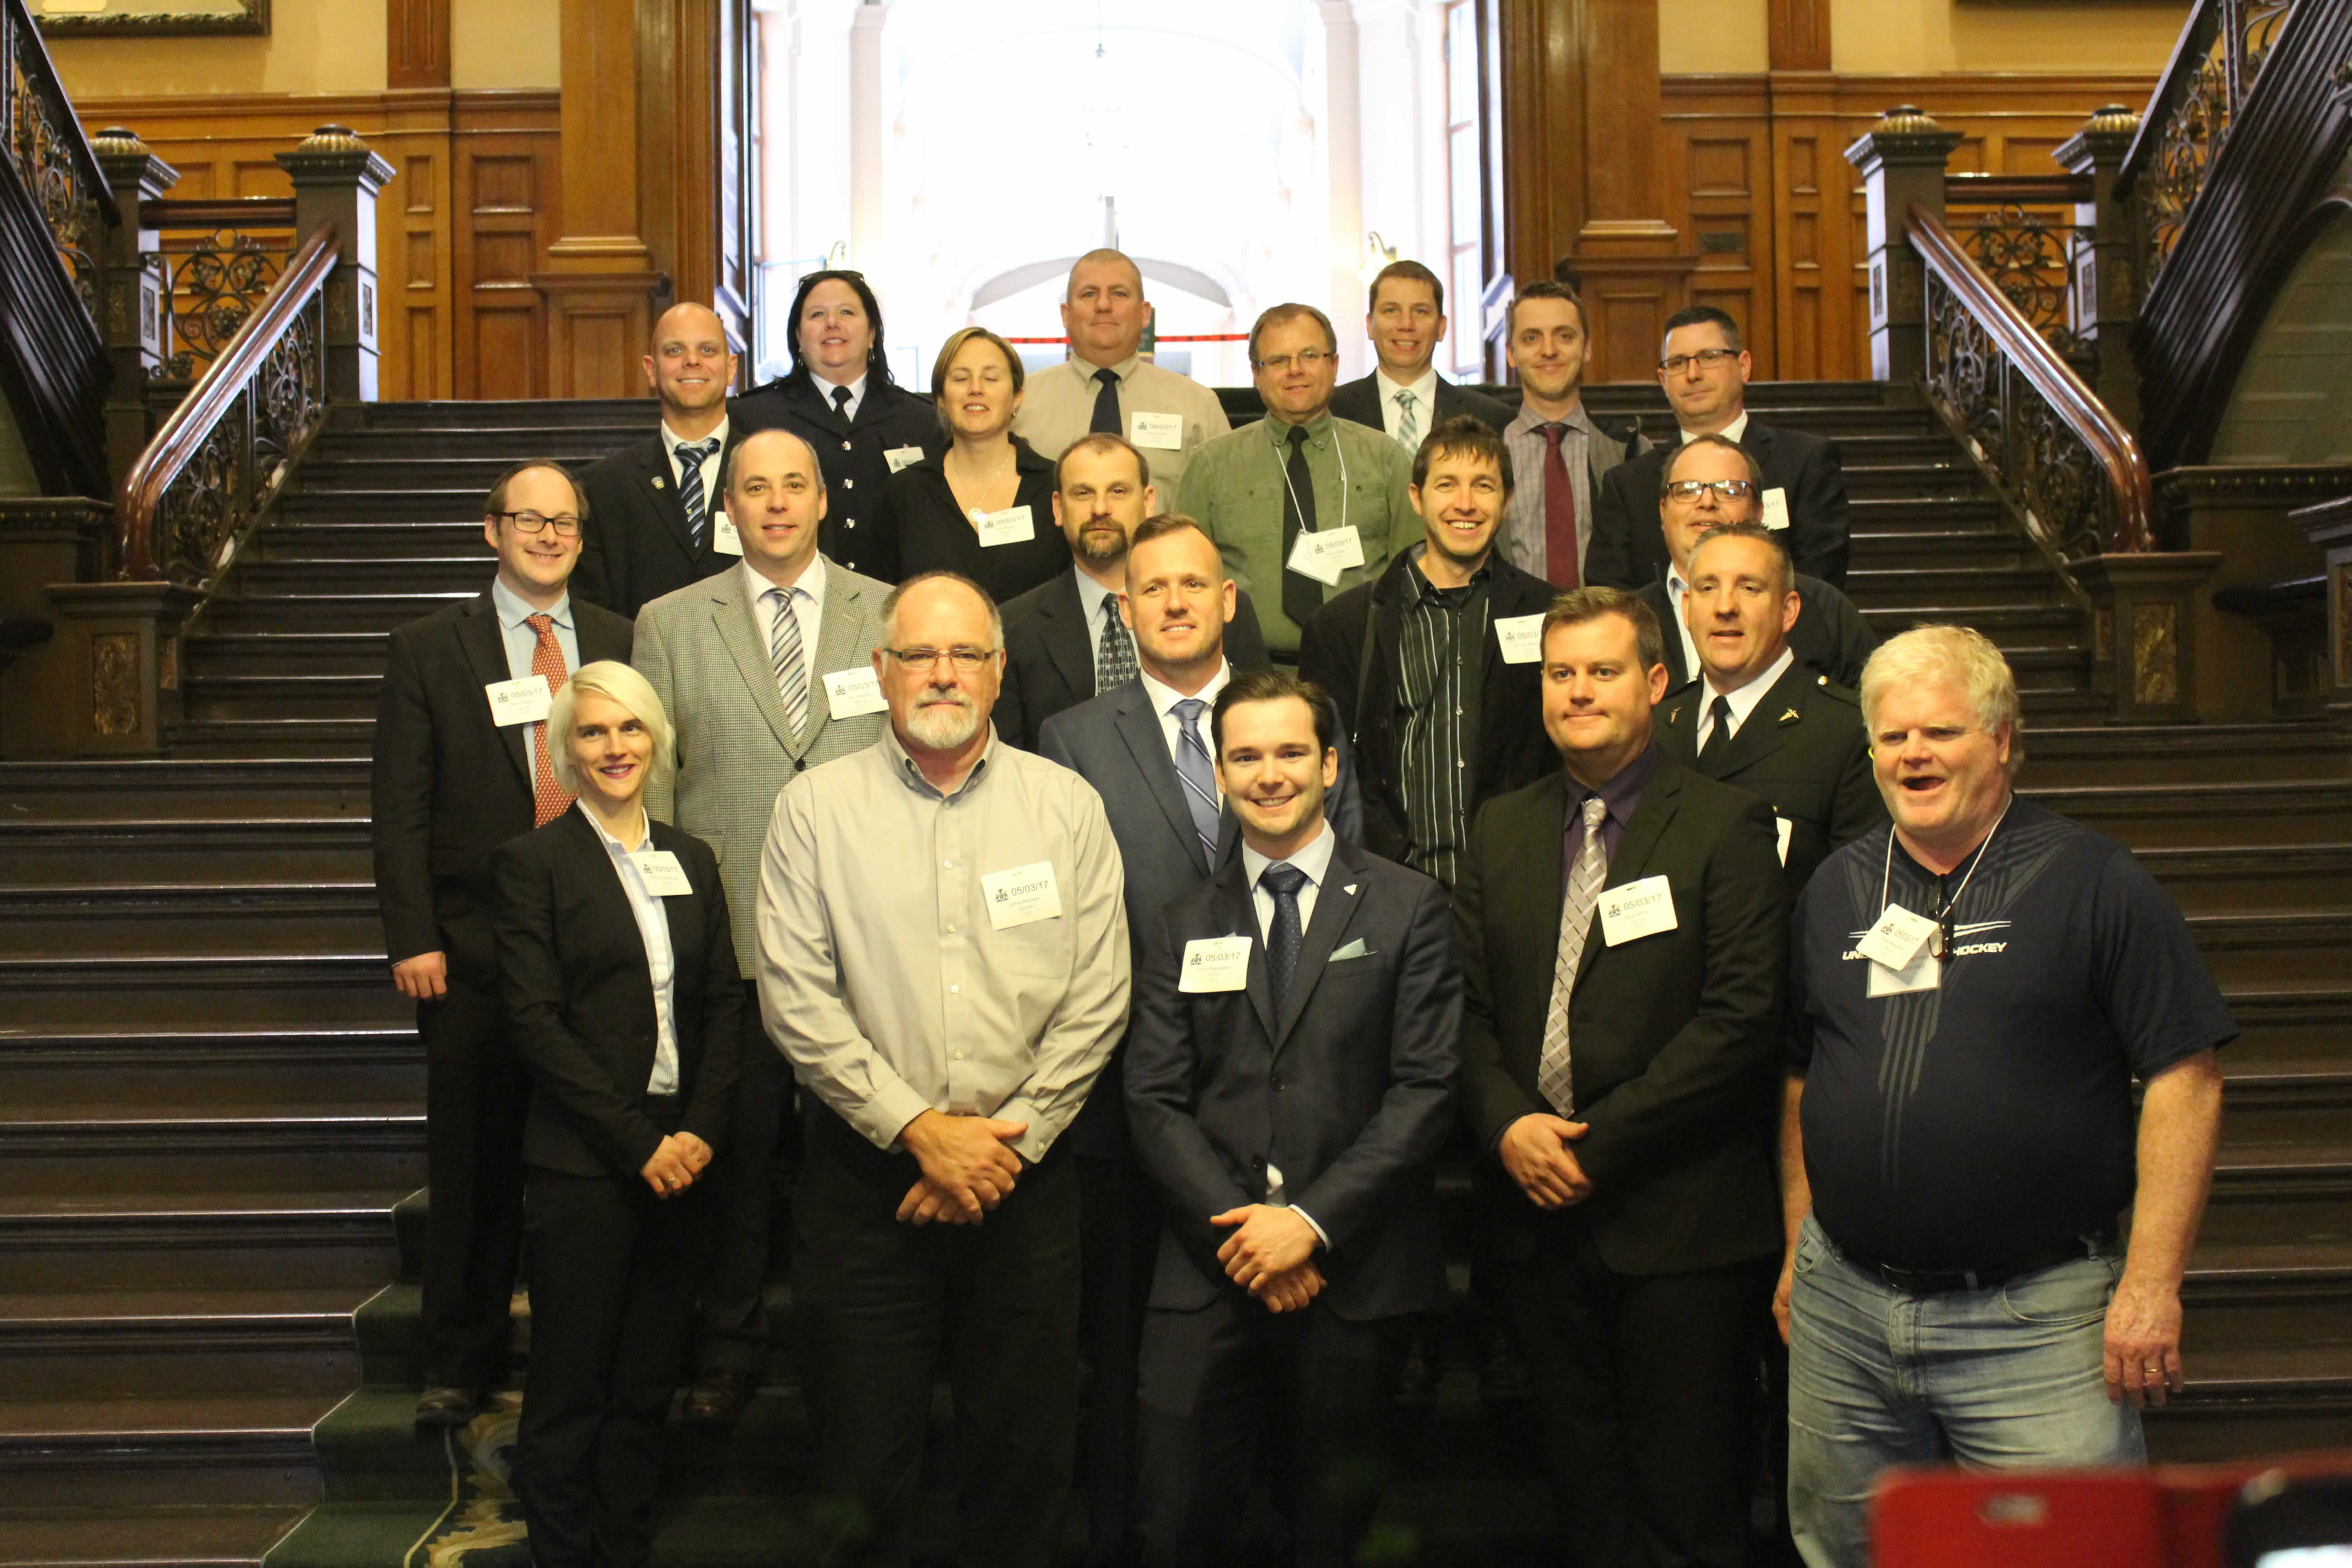 OPSEU Paramedic members pose on the stairs at Queen's Park during a lobby day.